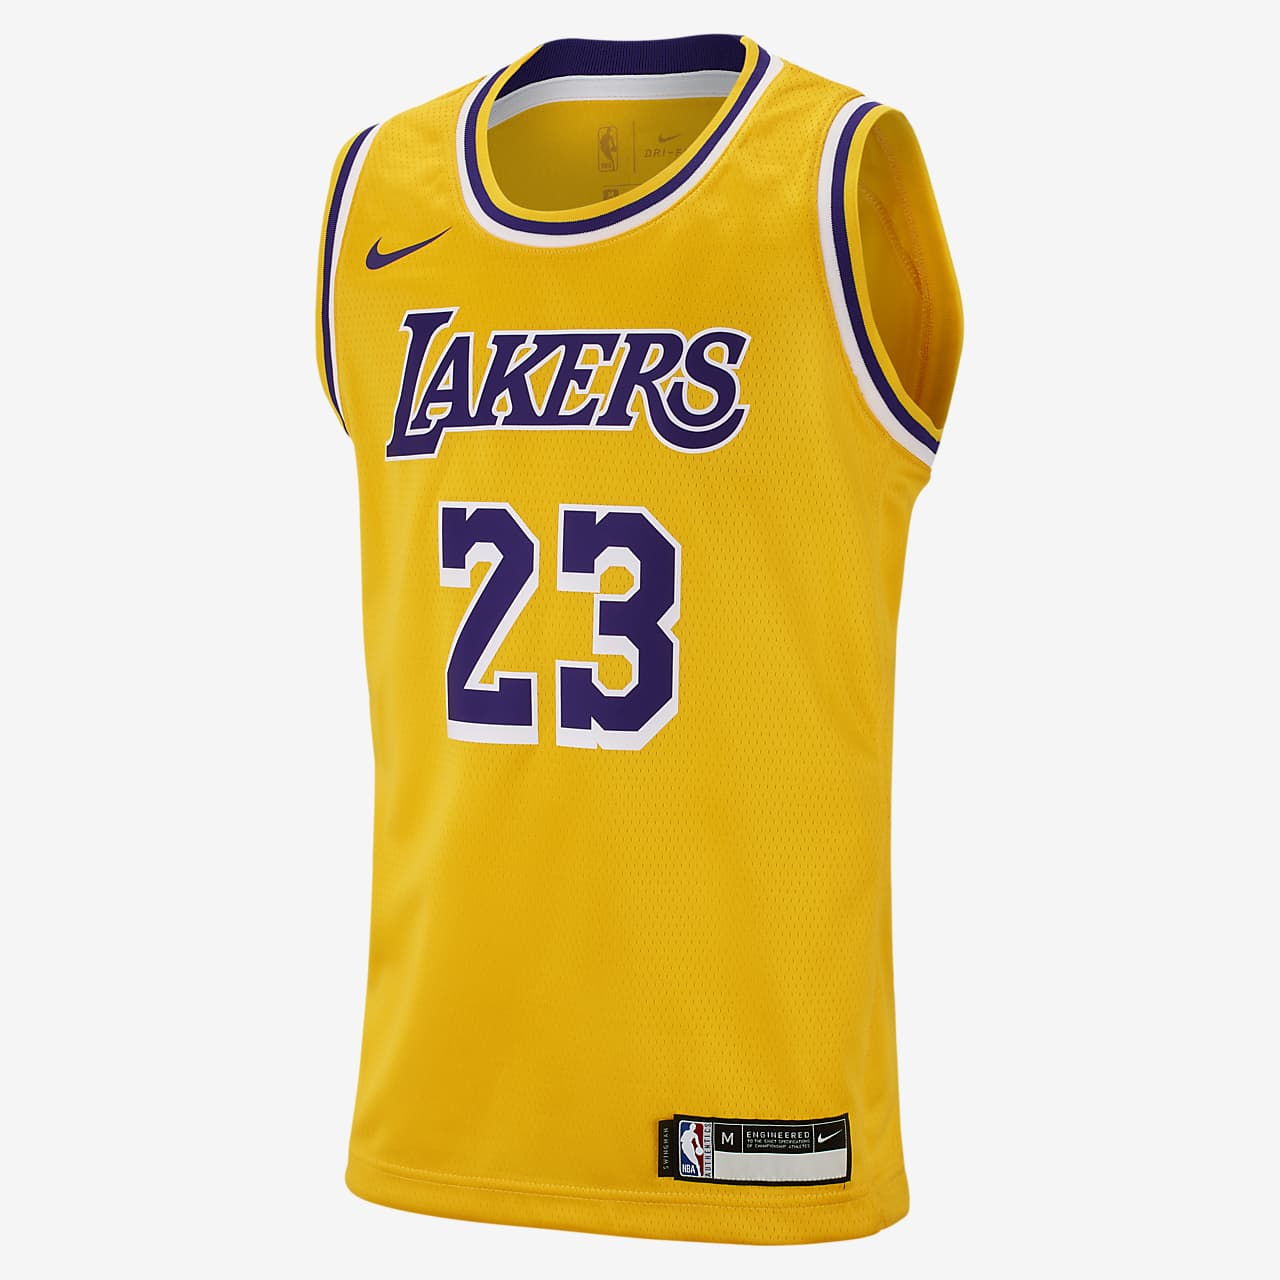 Lebron James Lakers Youth Jersey On Sale, UP TO 61% OFF